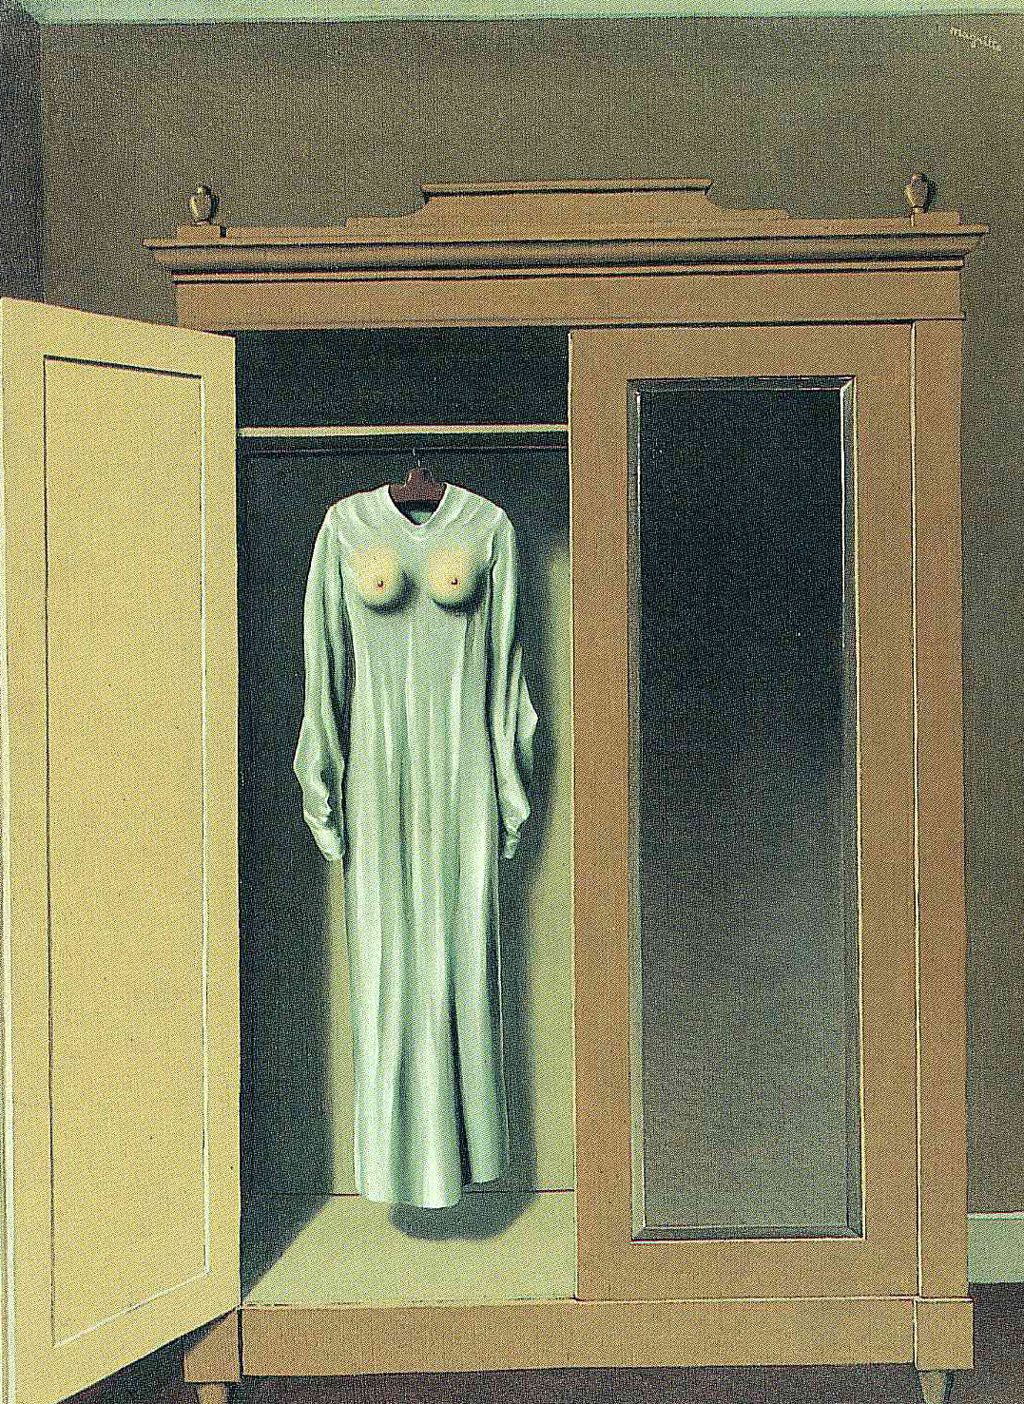 Homage to Mack Sennett by René Magritte, 1937. Oil on canvas. Collection of the City of Louviere (La Louviere, Belgium).